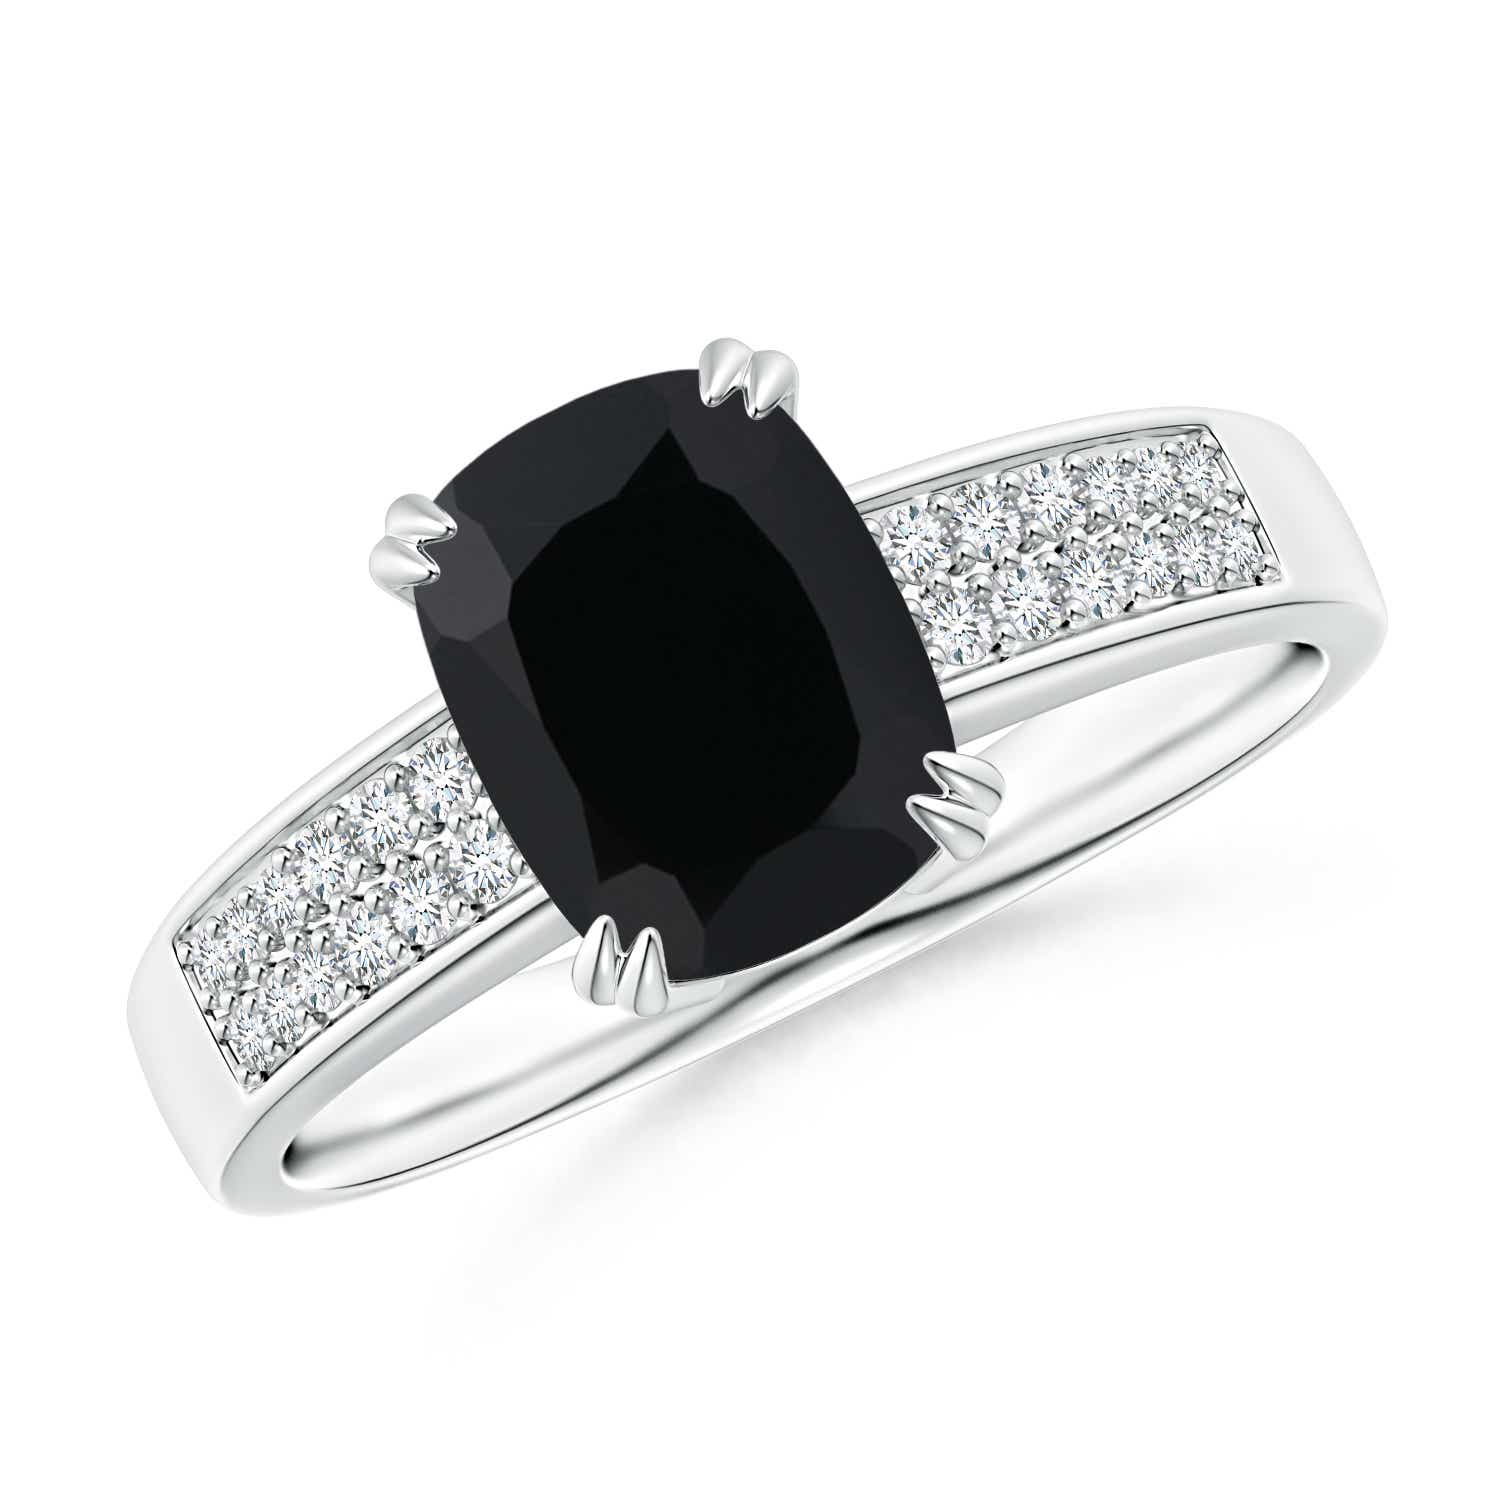 Solitaire Black yx Diamond Engagement Ring 14k White Gold Size 3